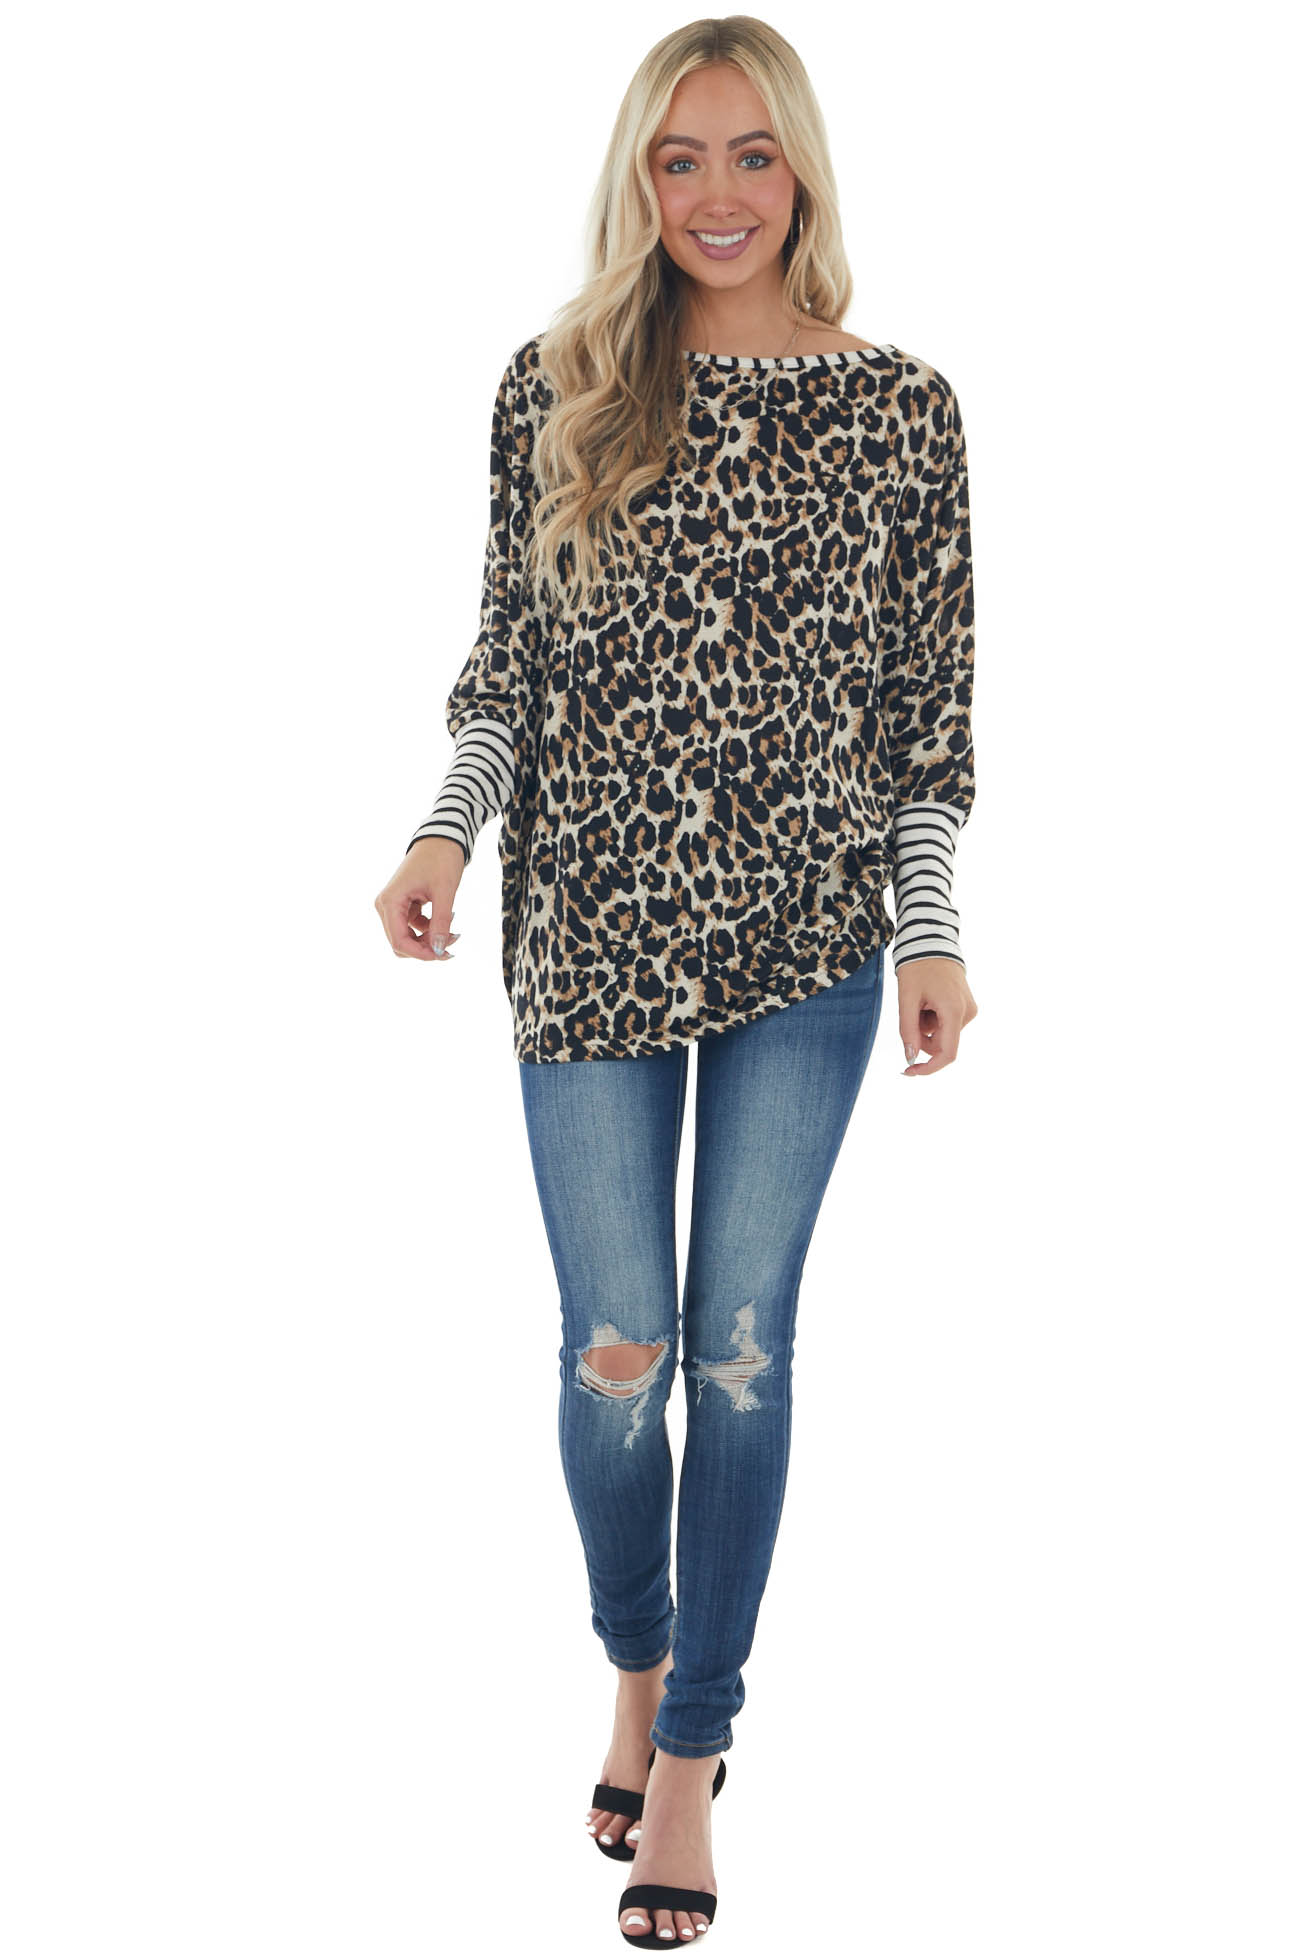 Ivory Leopard Print with Stripe Contrast Top